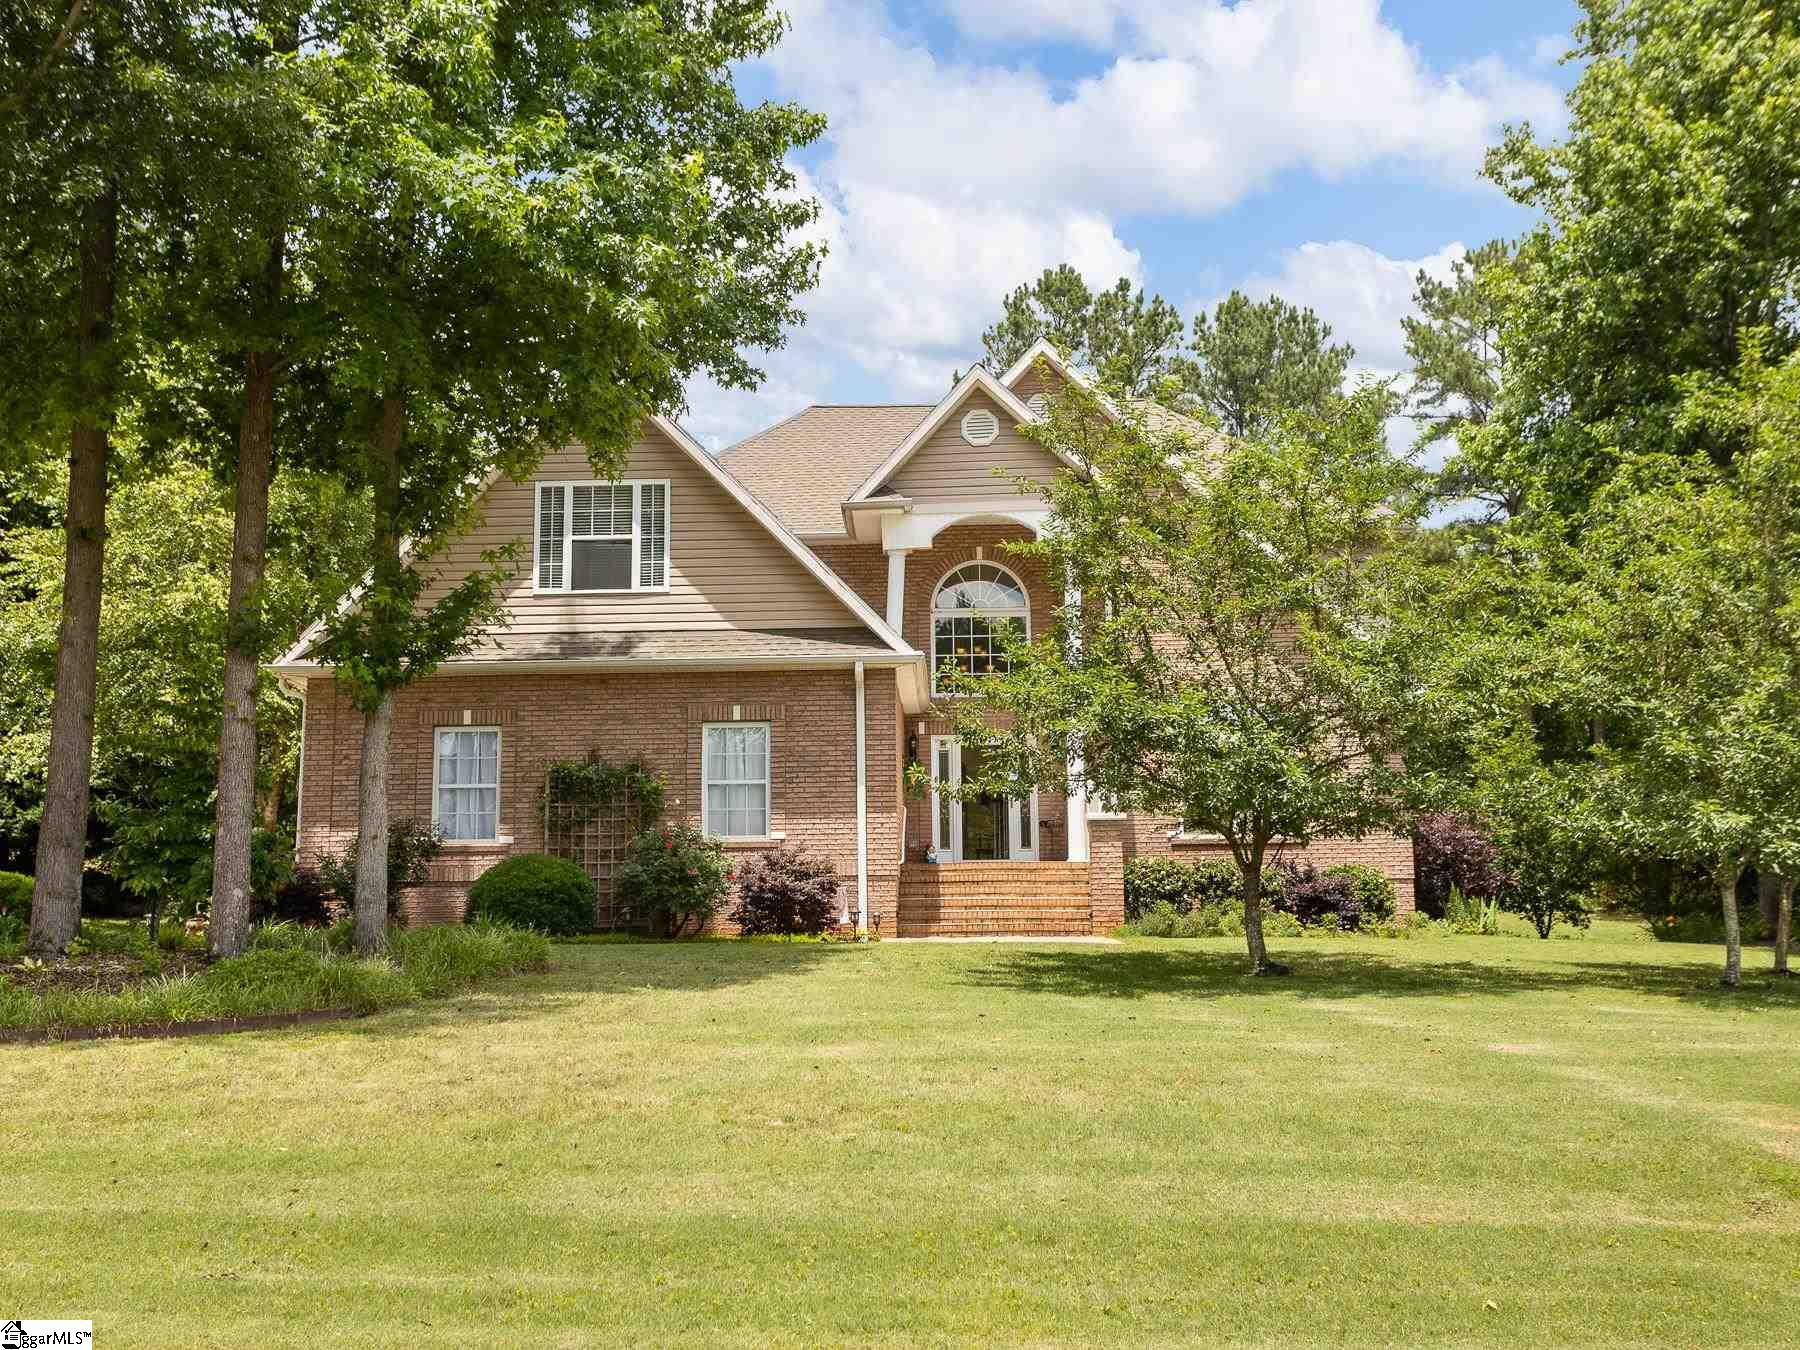 508 Boat House Court Inman, SC 29349